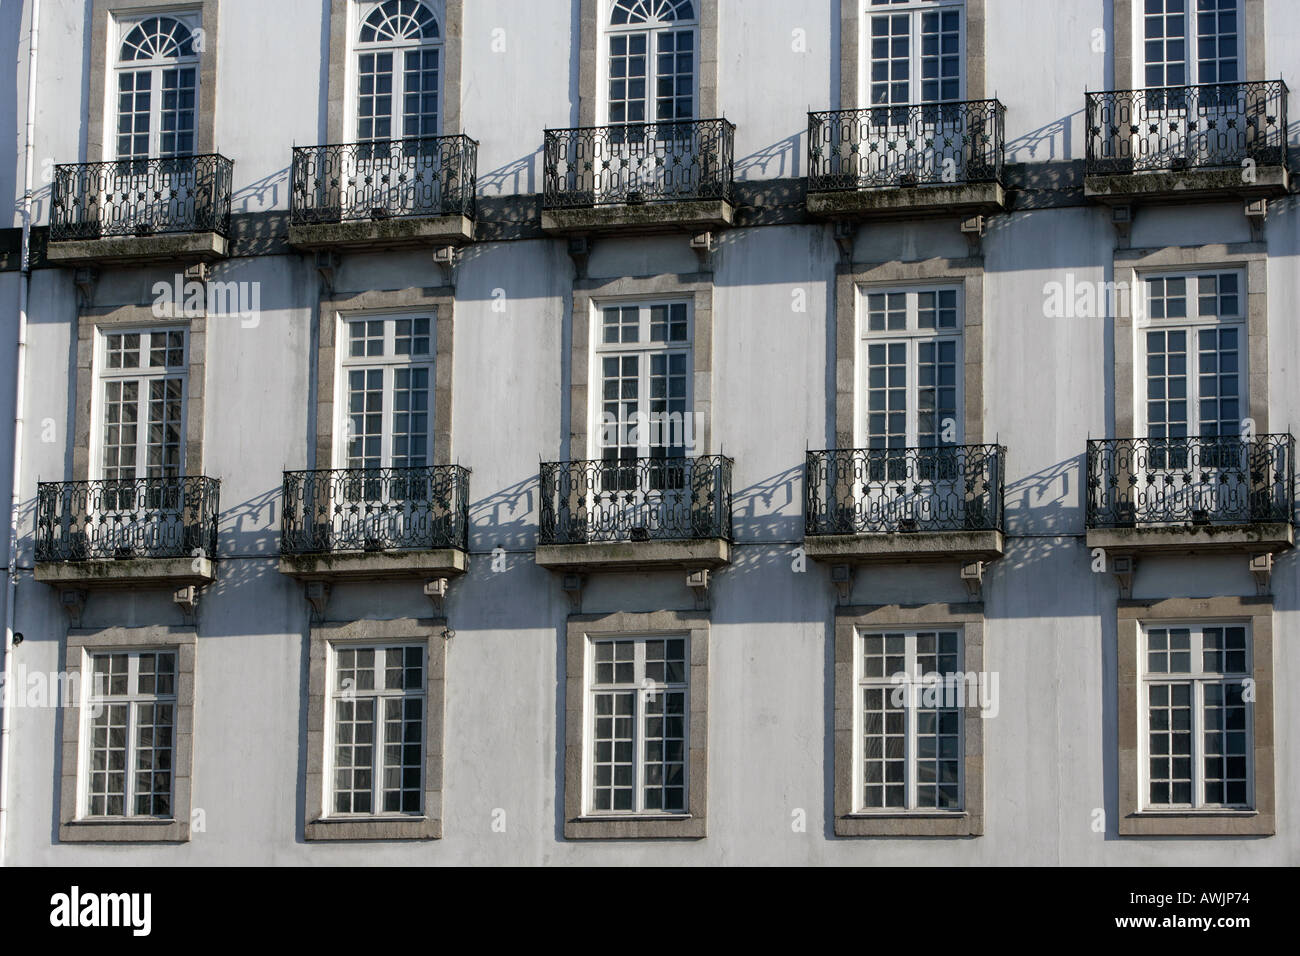 Balcony french doors - A Detail Shot Of A Classical Building With Multiple Windows French Doors And Balconies